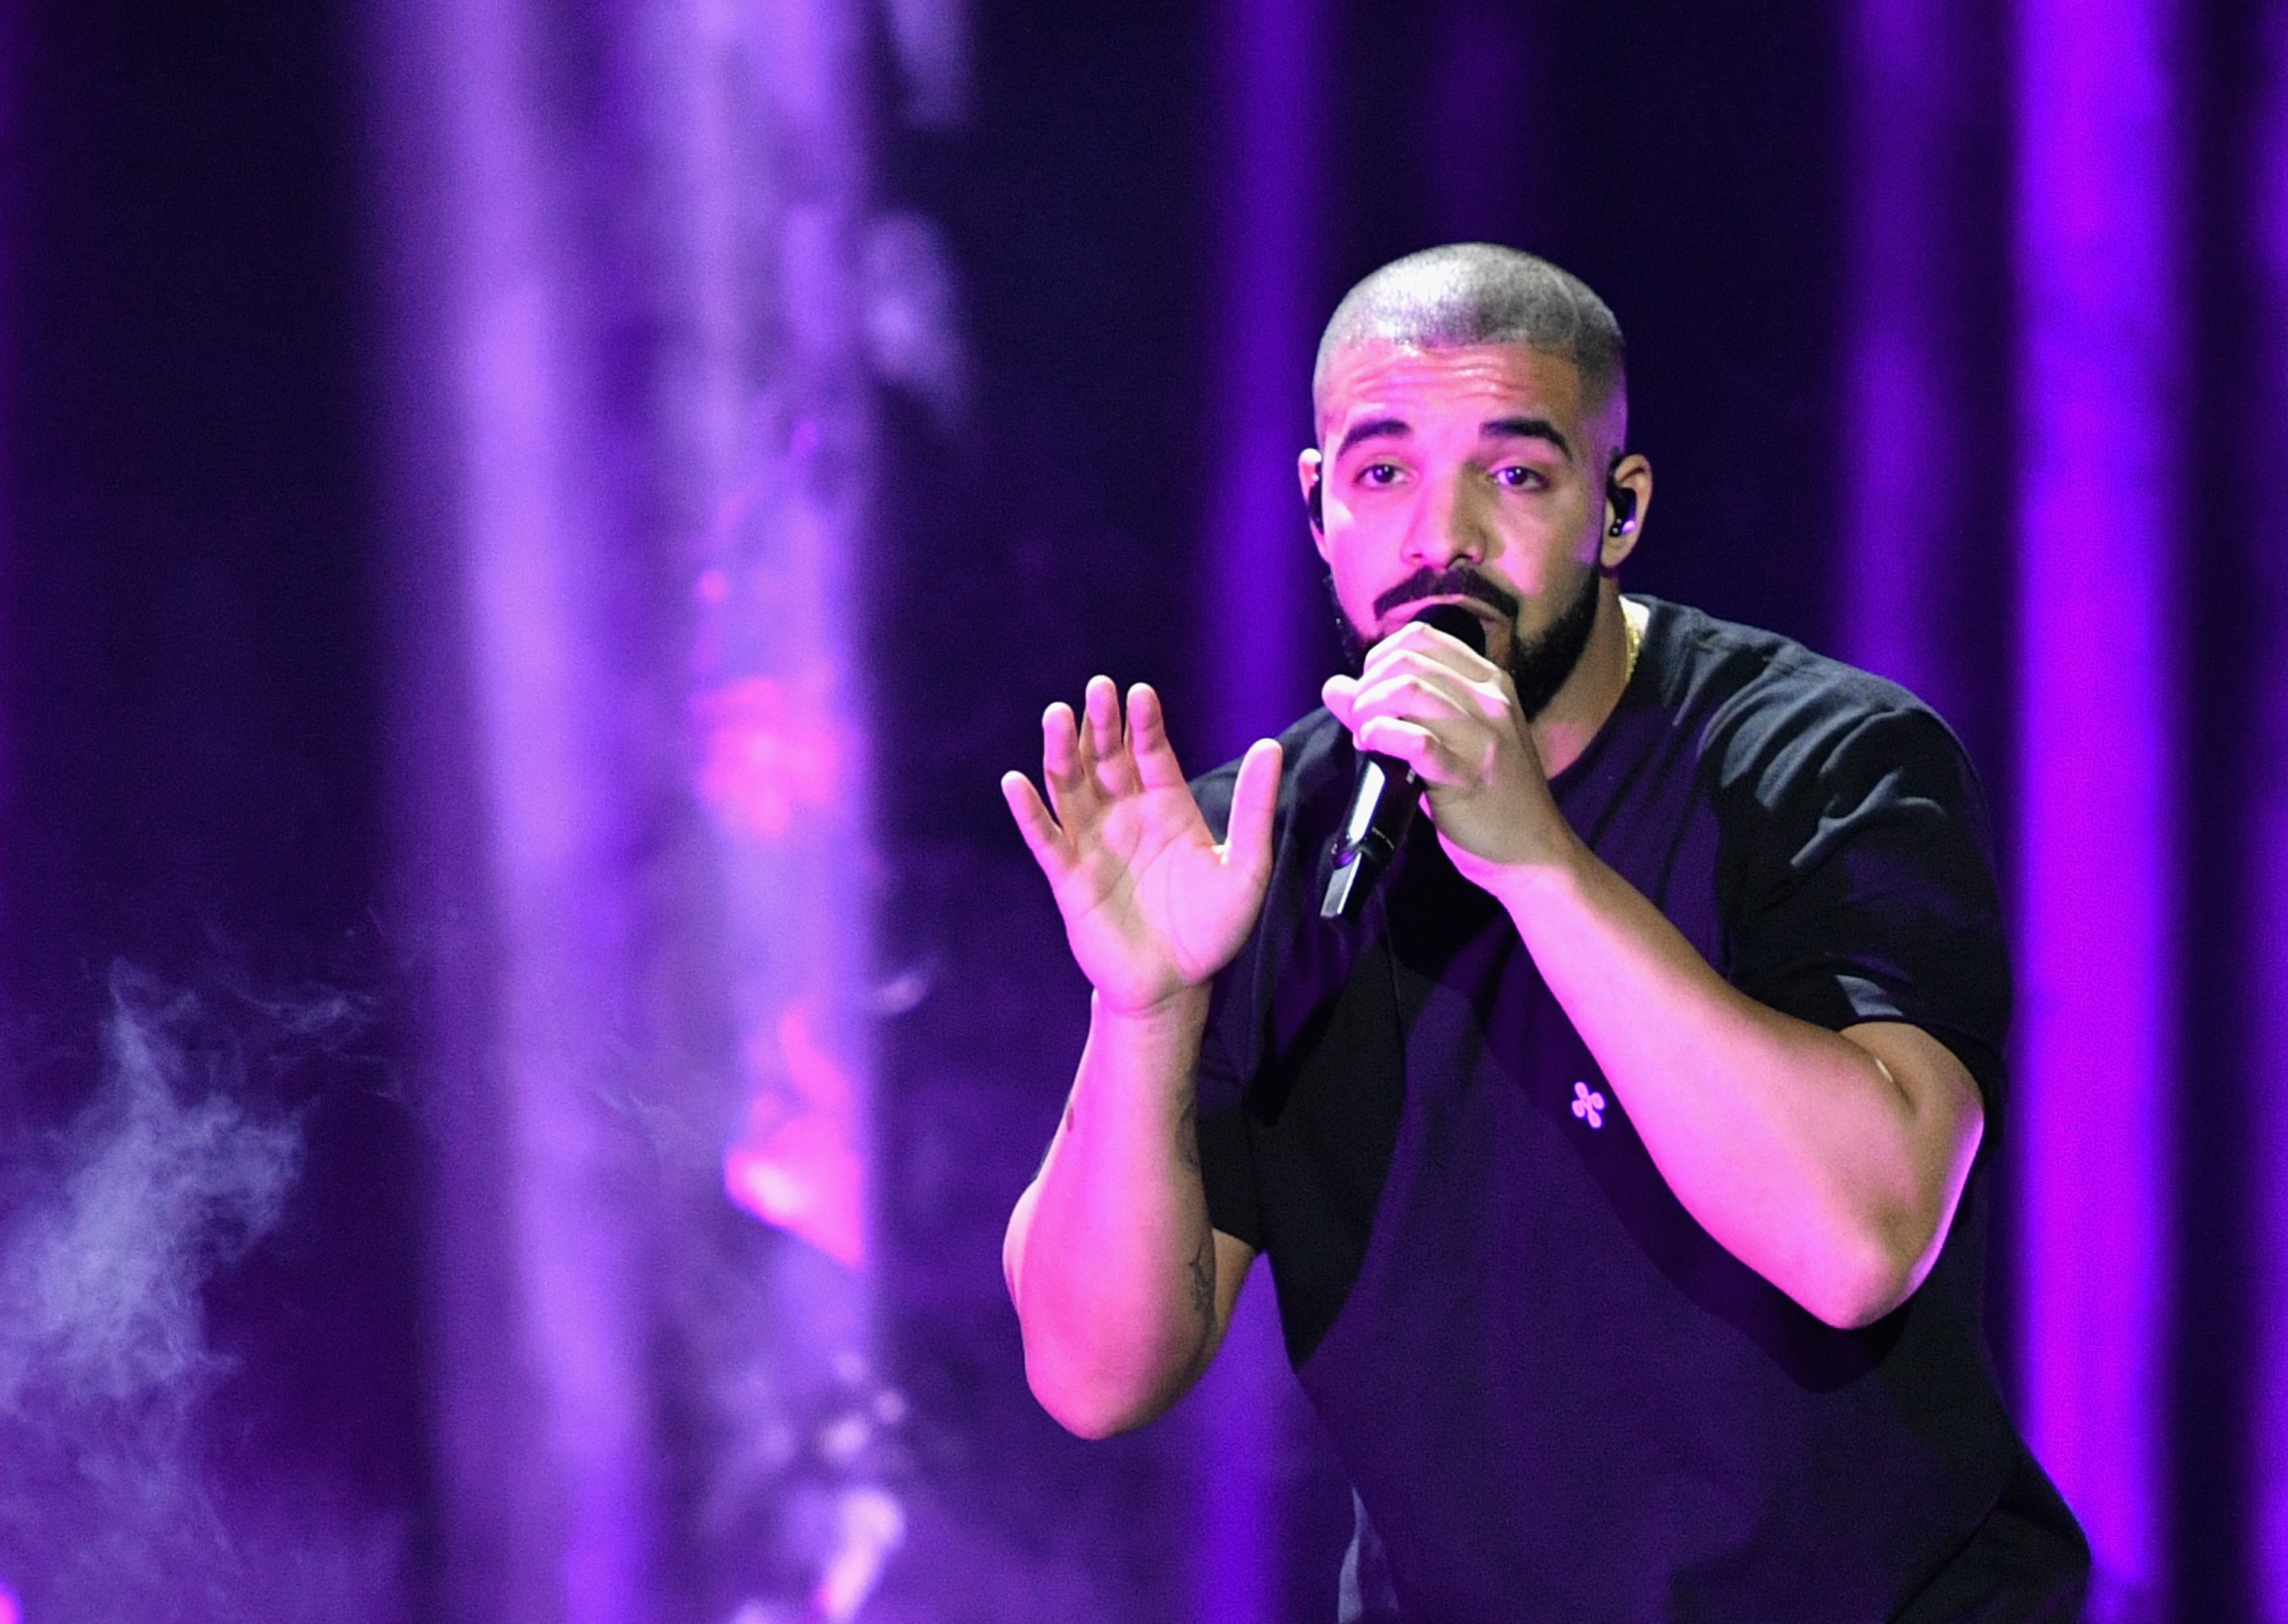 Drake performs onstage at the 2016 iHeartRadio Music Festival at T-Mobile Arena on September 23, 2016 in Las Vegas